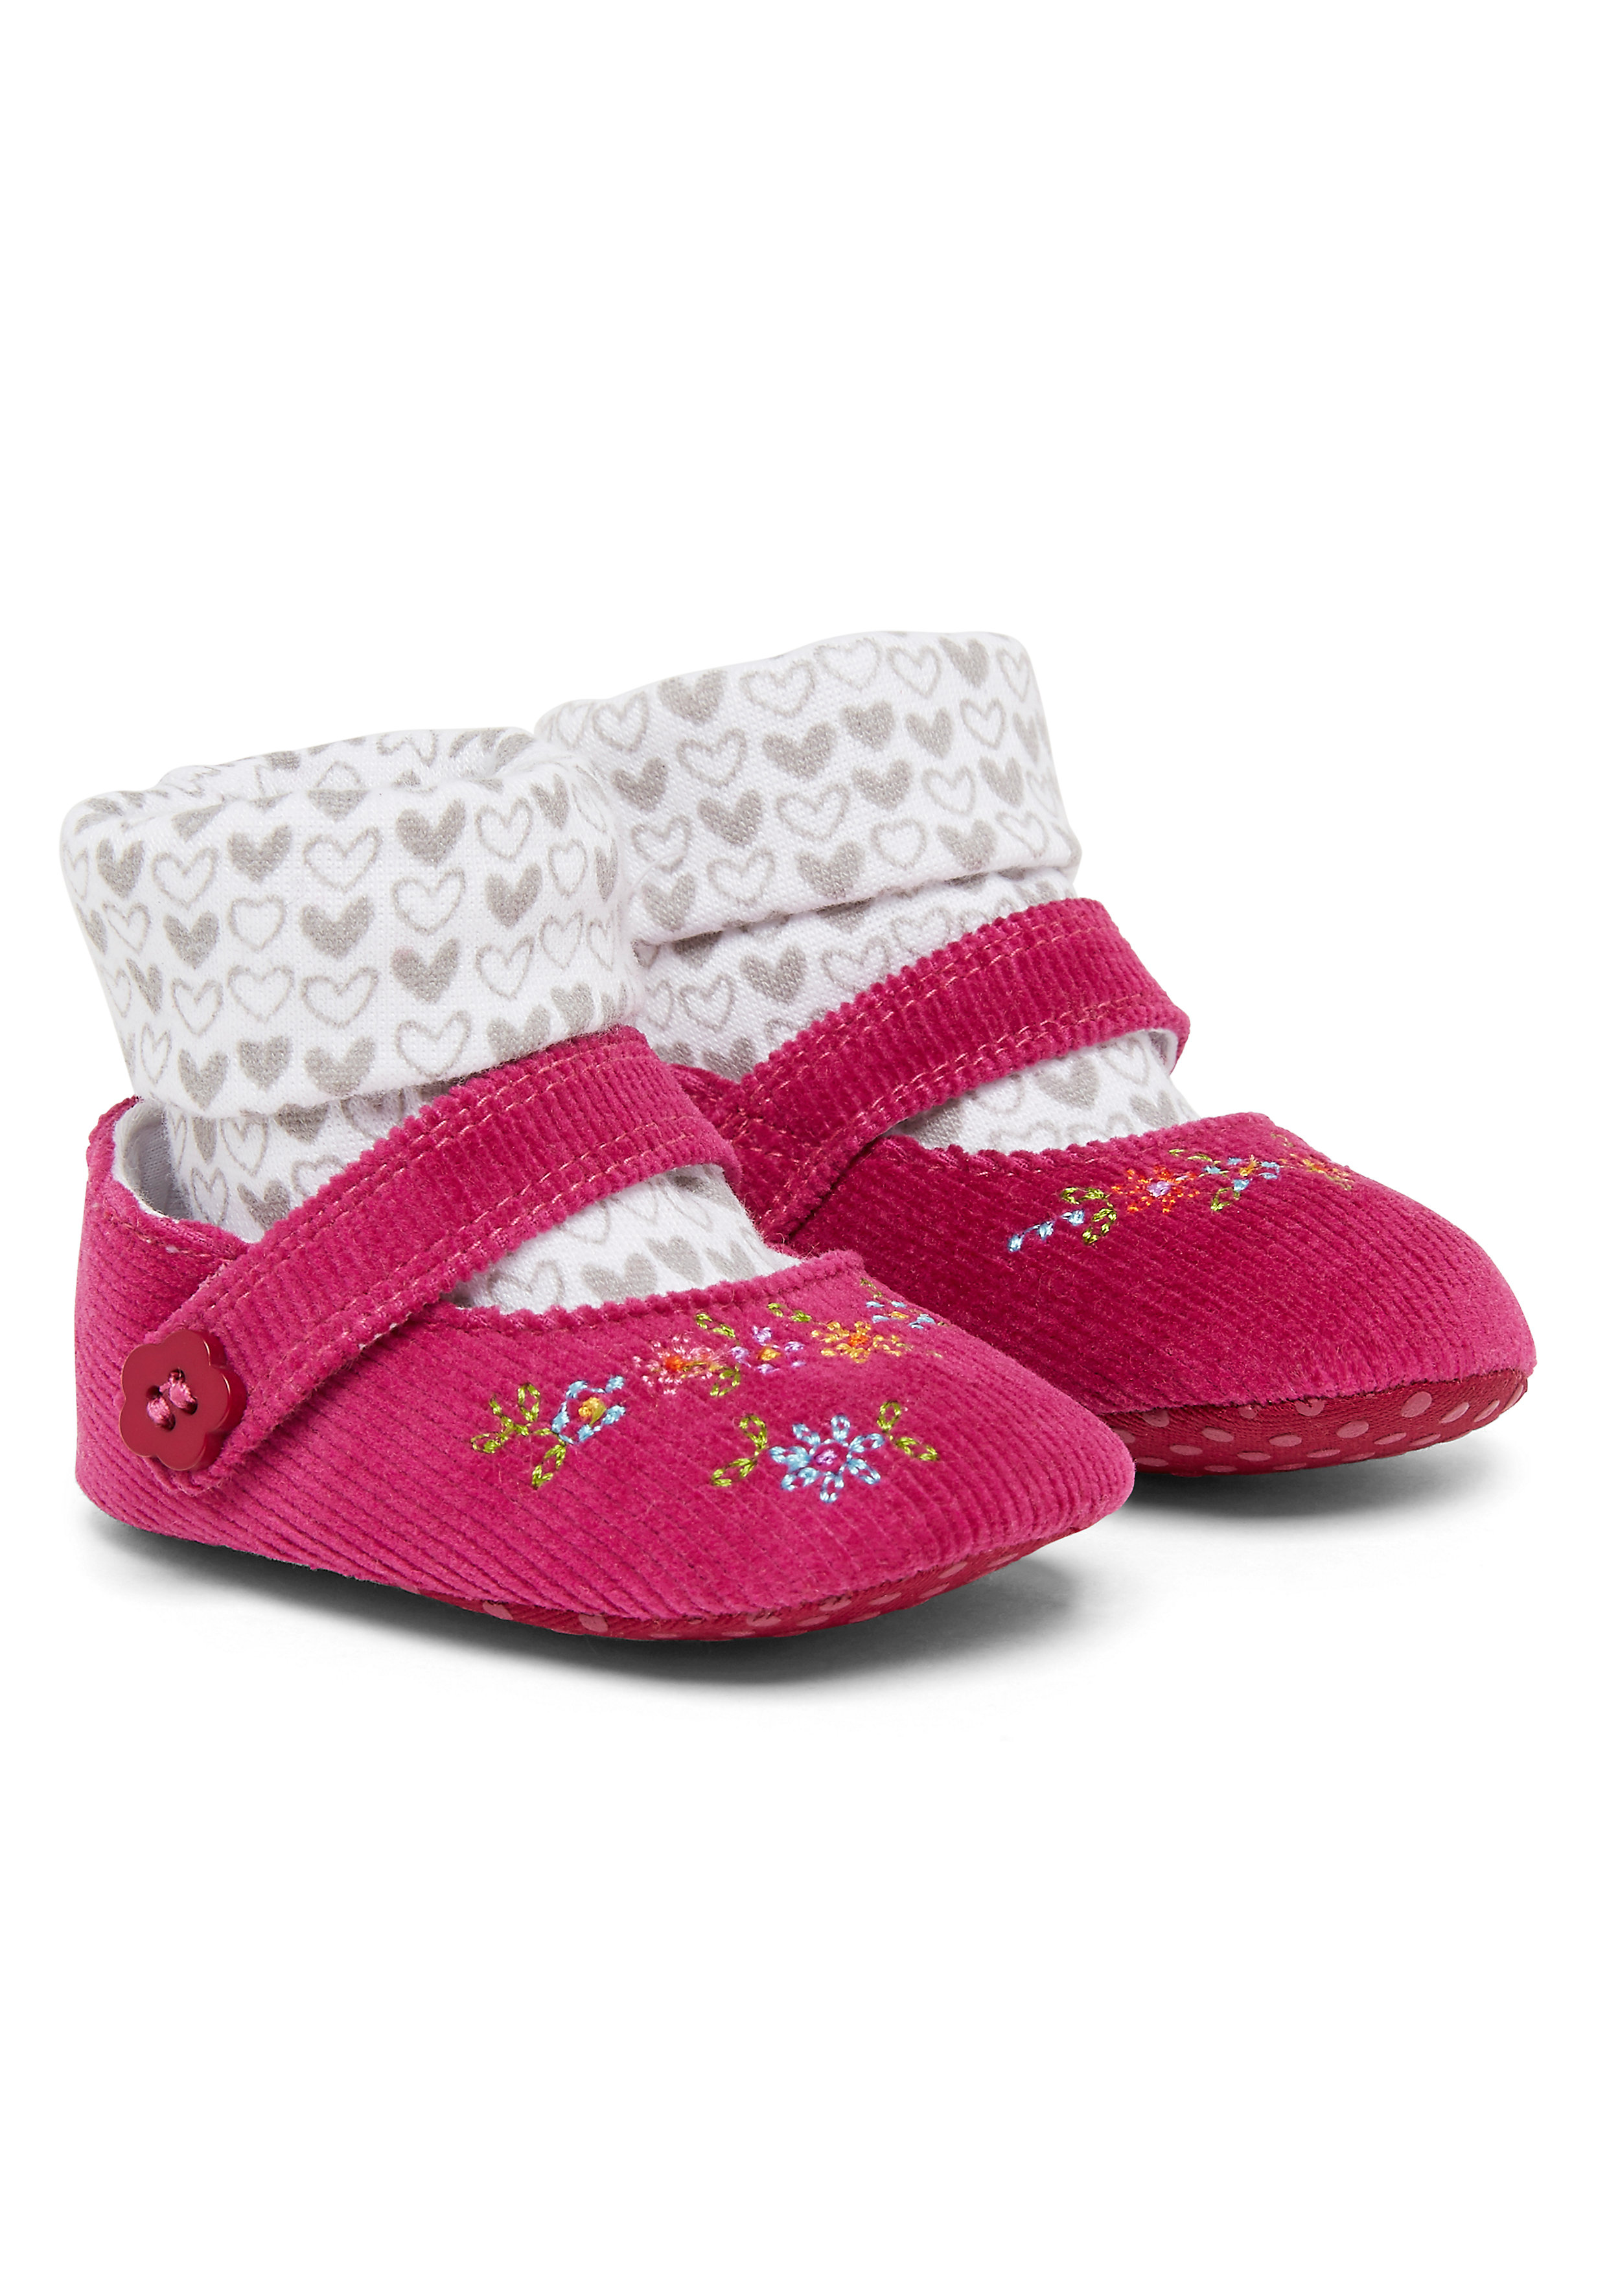 Mothercare | Girls Cord Sock Top Shoes - Pink